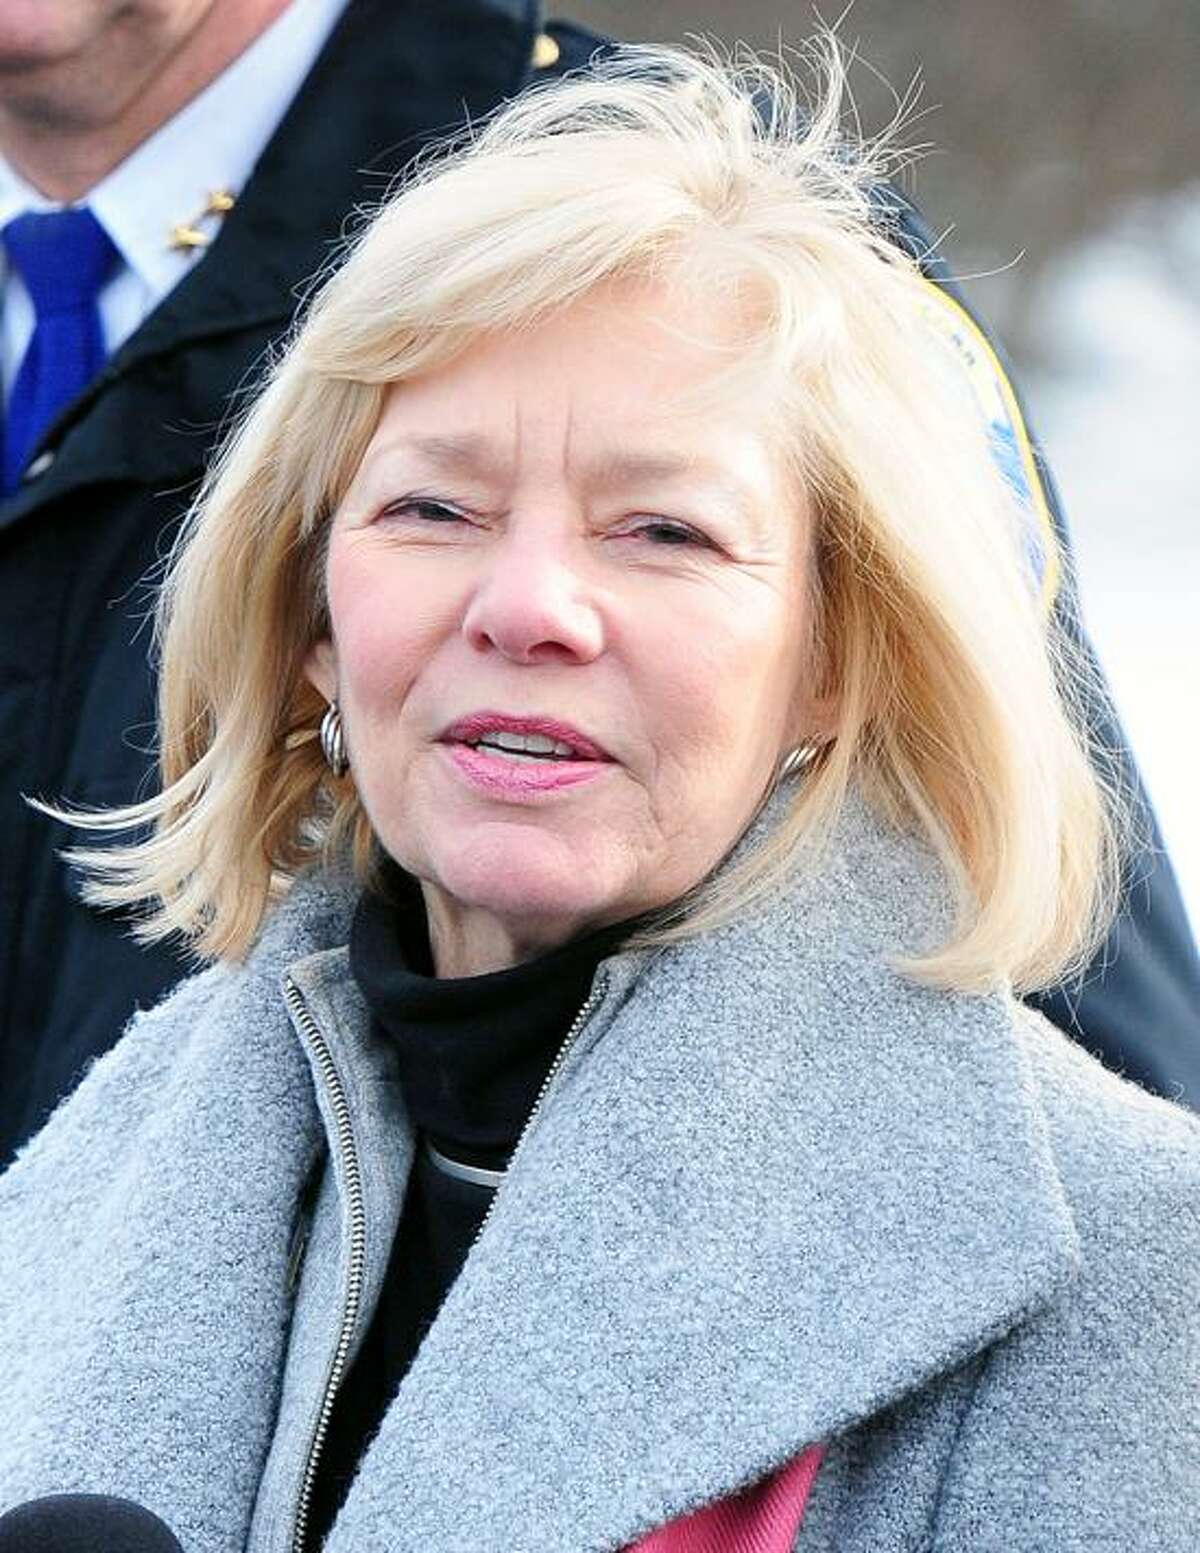 Newtown Superintendent of Schools Janet Robinson speaks to the press at Wolfe Park in Monroe about the new Sandy Hook Elementary School in Monroe on 1/2/2013. Behind her is Newtown Police Chief Michael Kehoe.Photo by Arnold Gold/New Haven Register